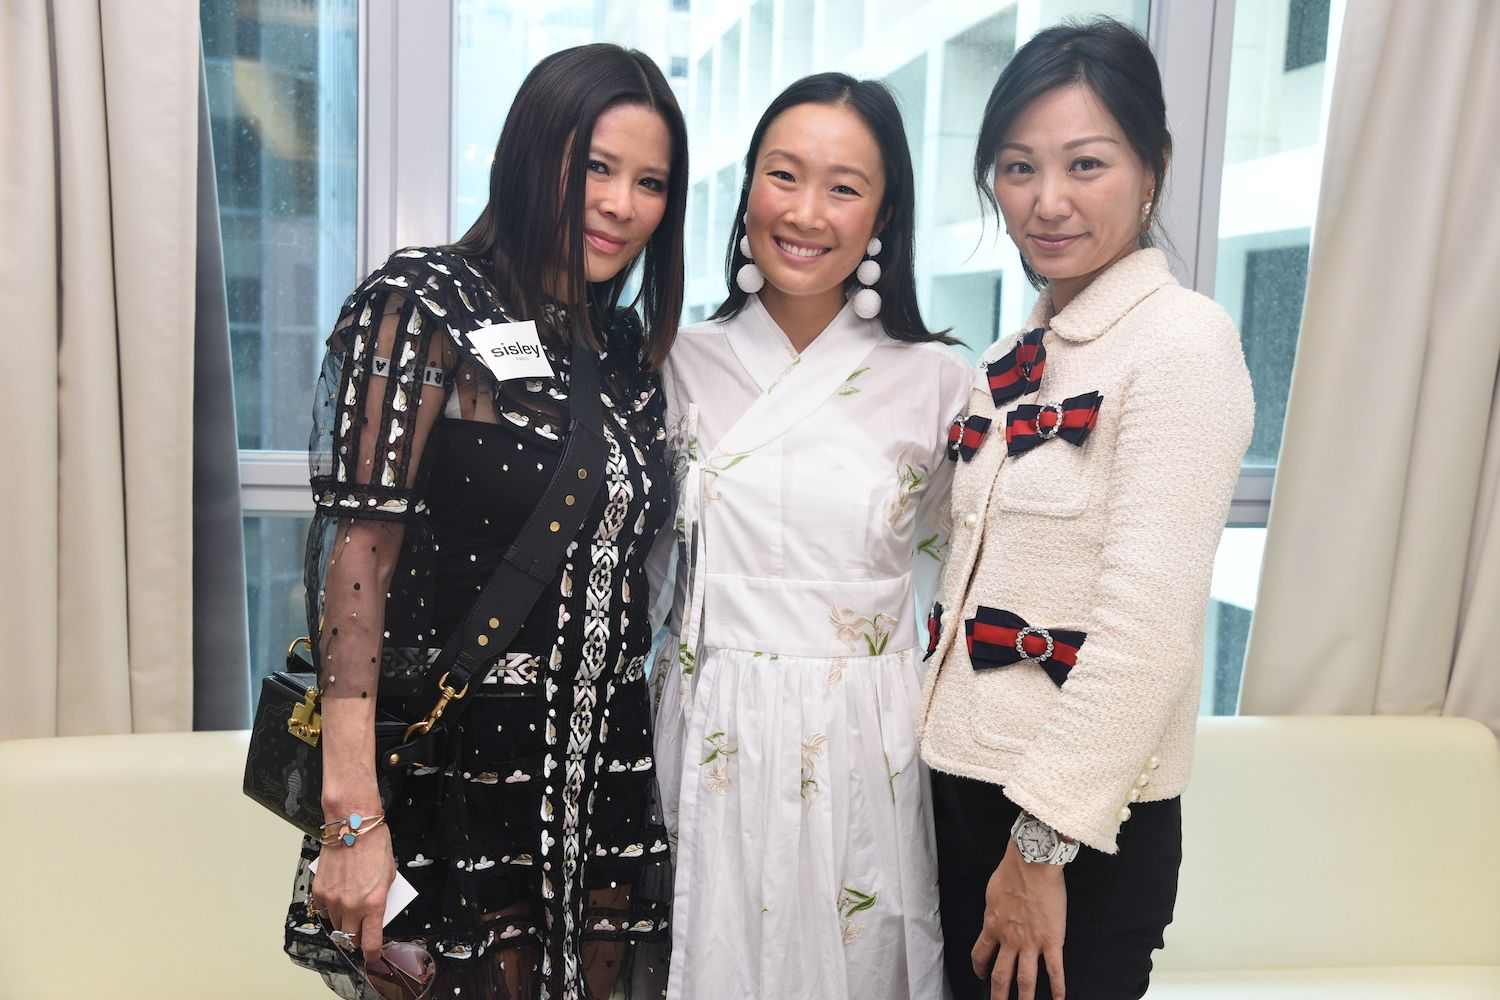 Yvette Yung, Chelsea Chau-Kuok and Michelle Cheng-Chan